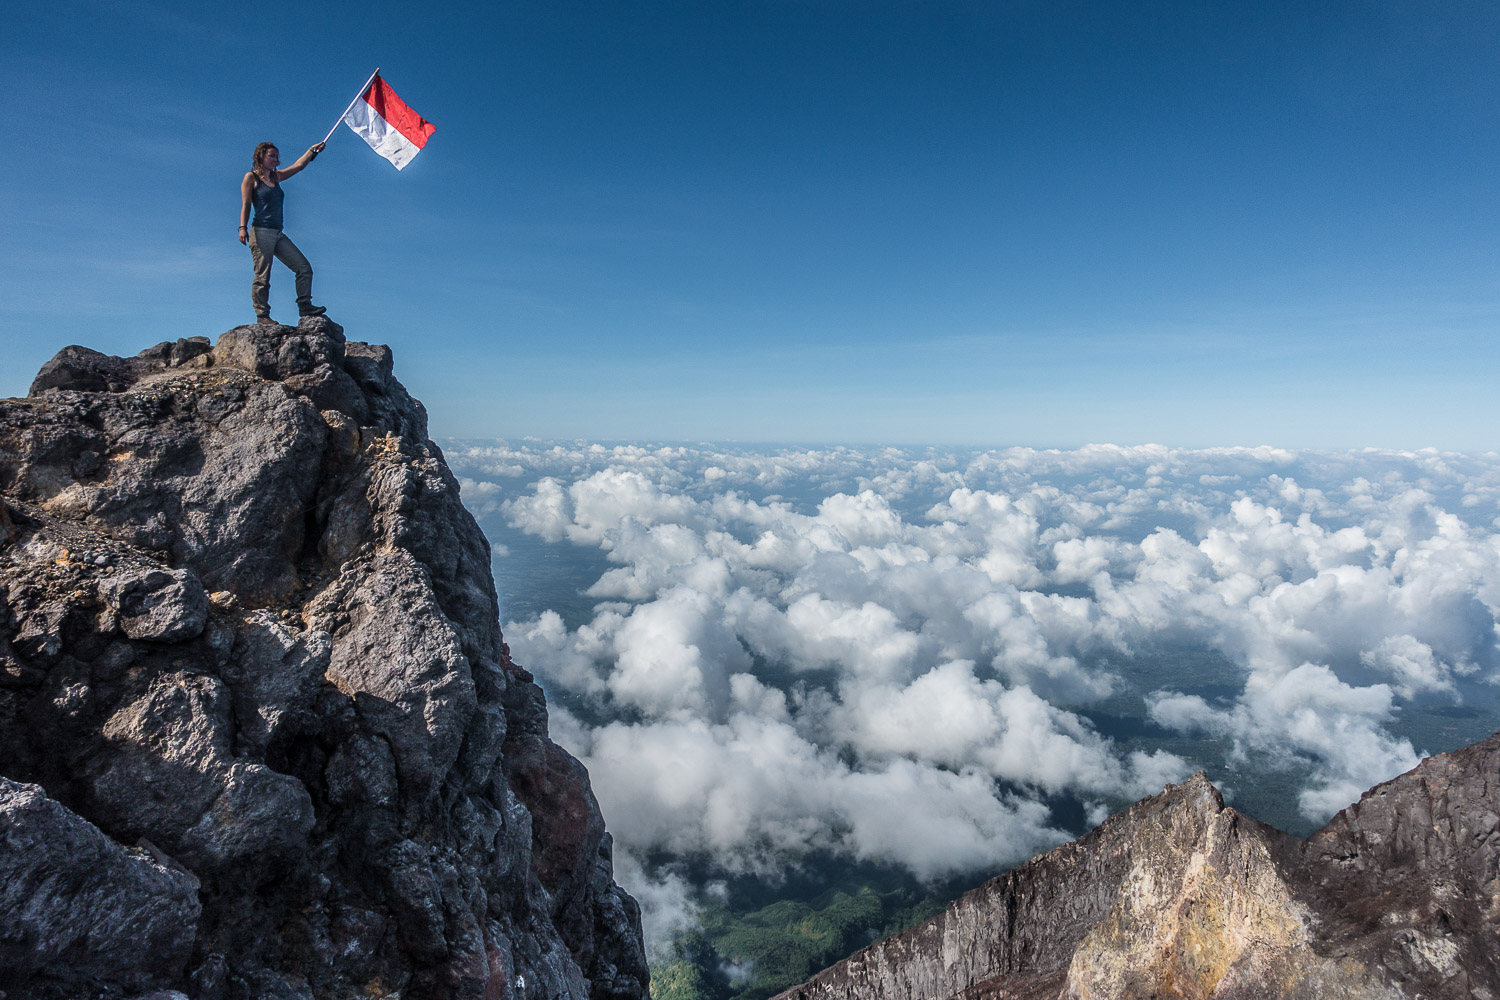 Eva waving the Indonesian flag on the summit of Merapi